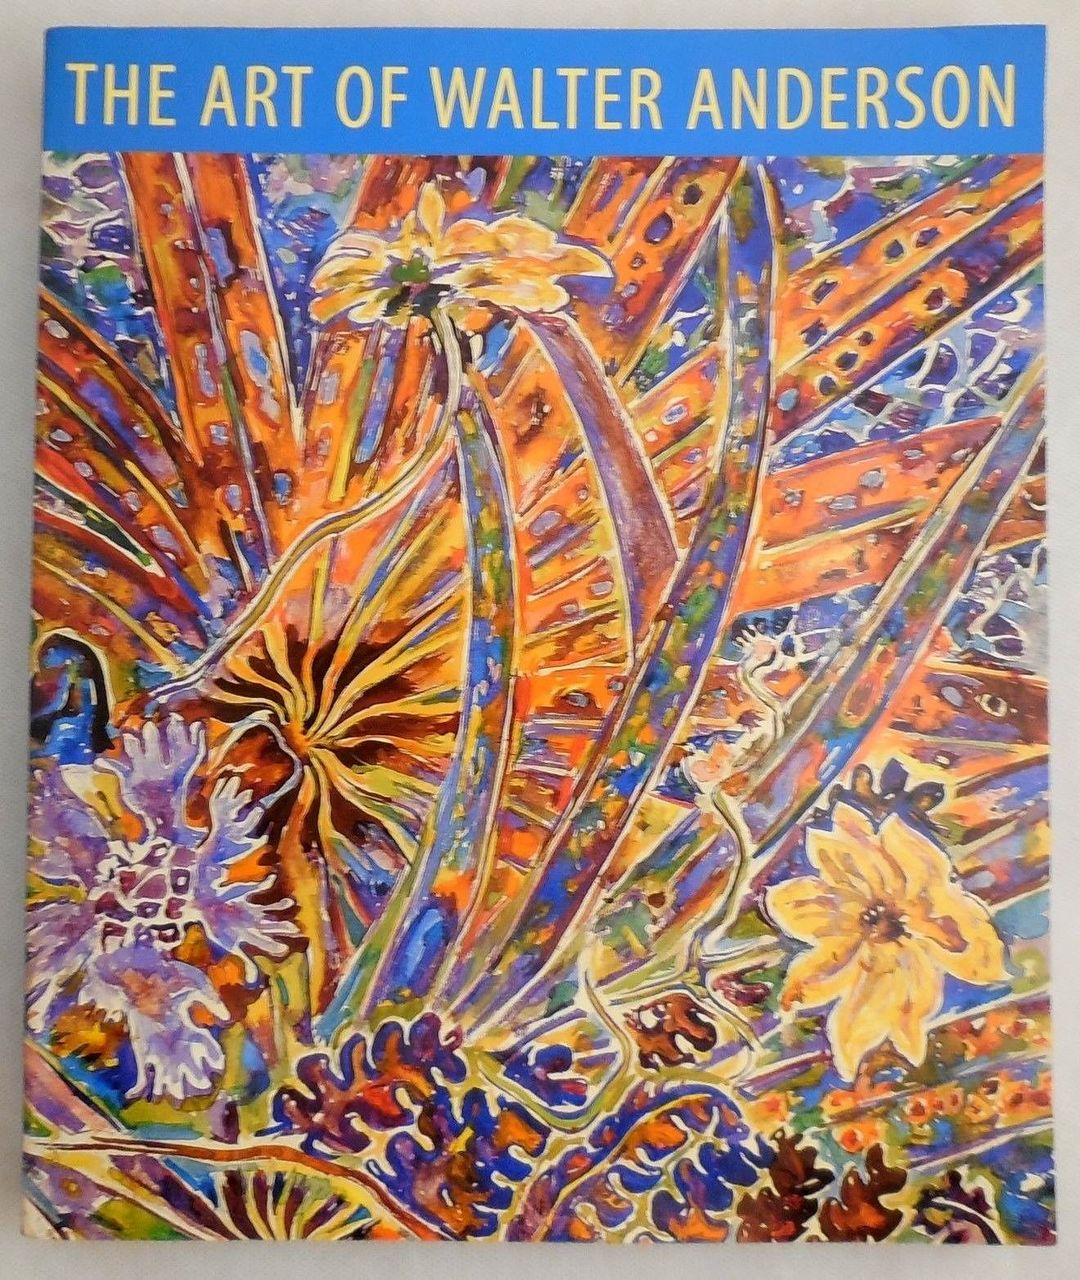 THE ART OF WALTER ANDERSON, by Patricia Pinson -2003 [1st Ed]